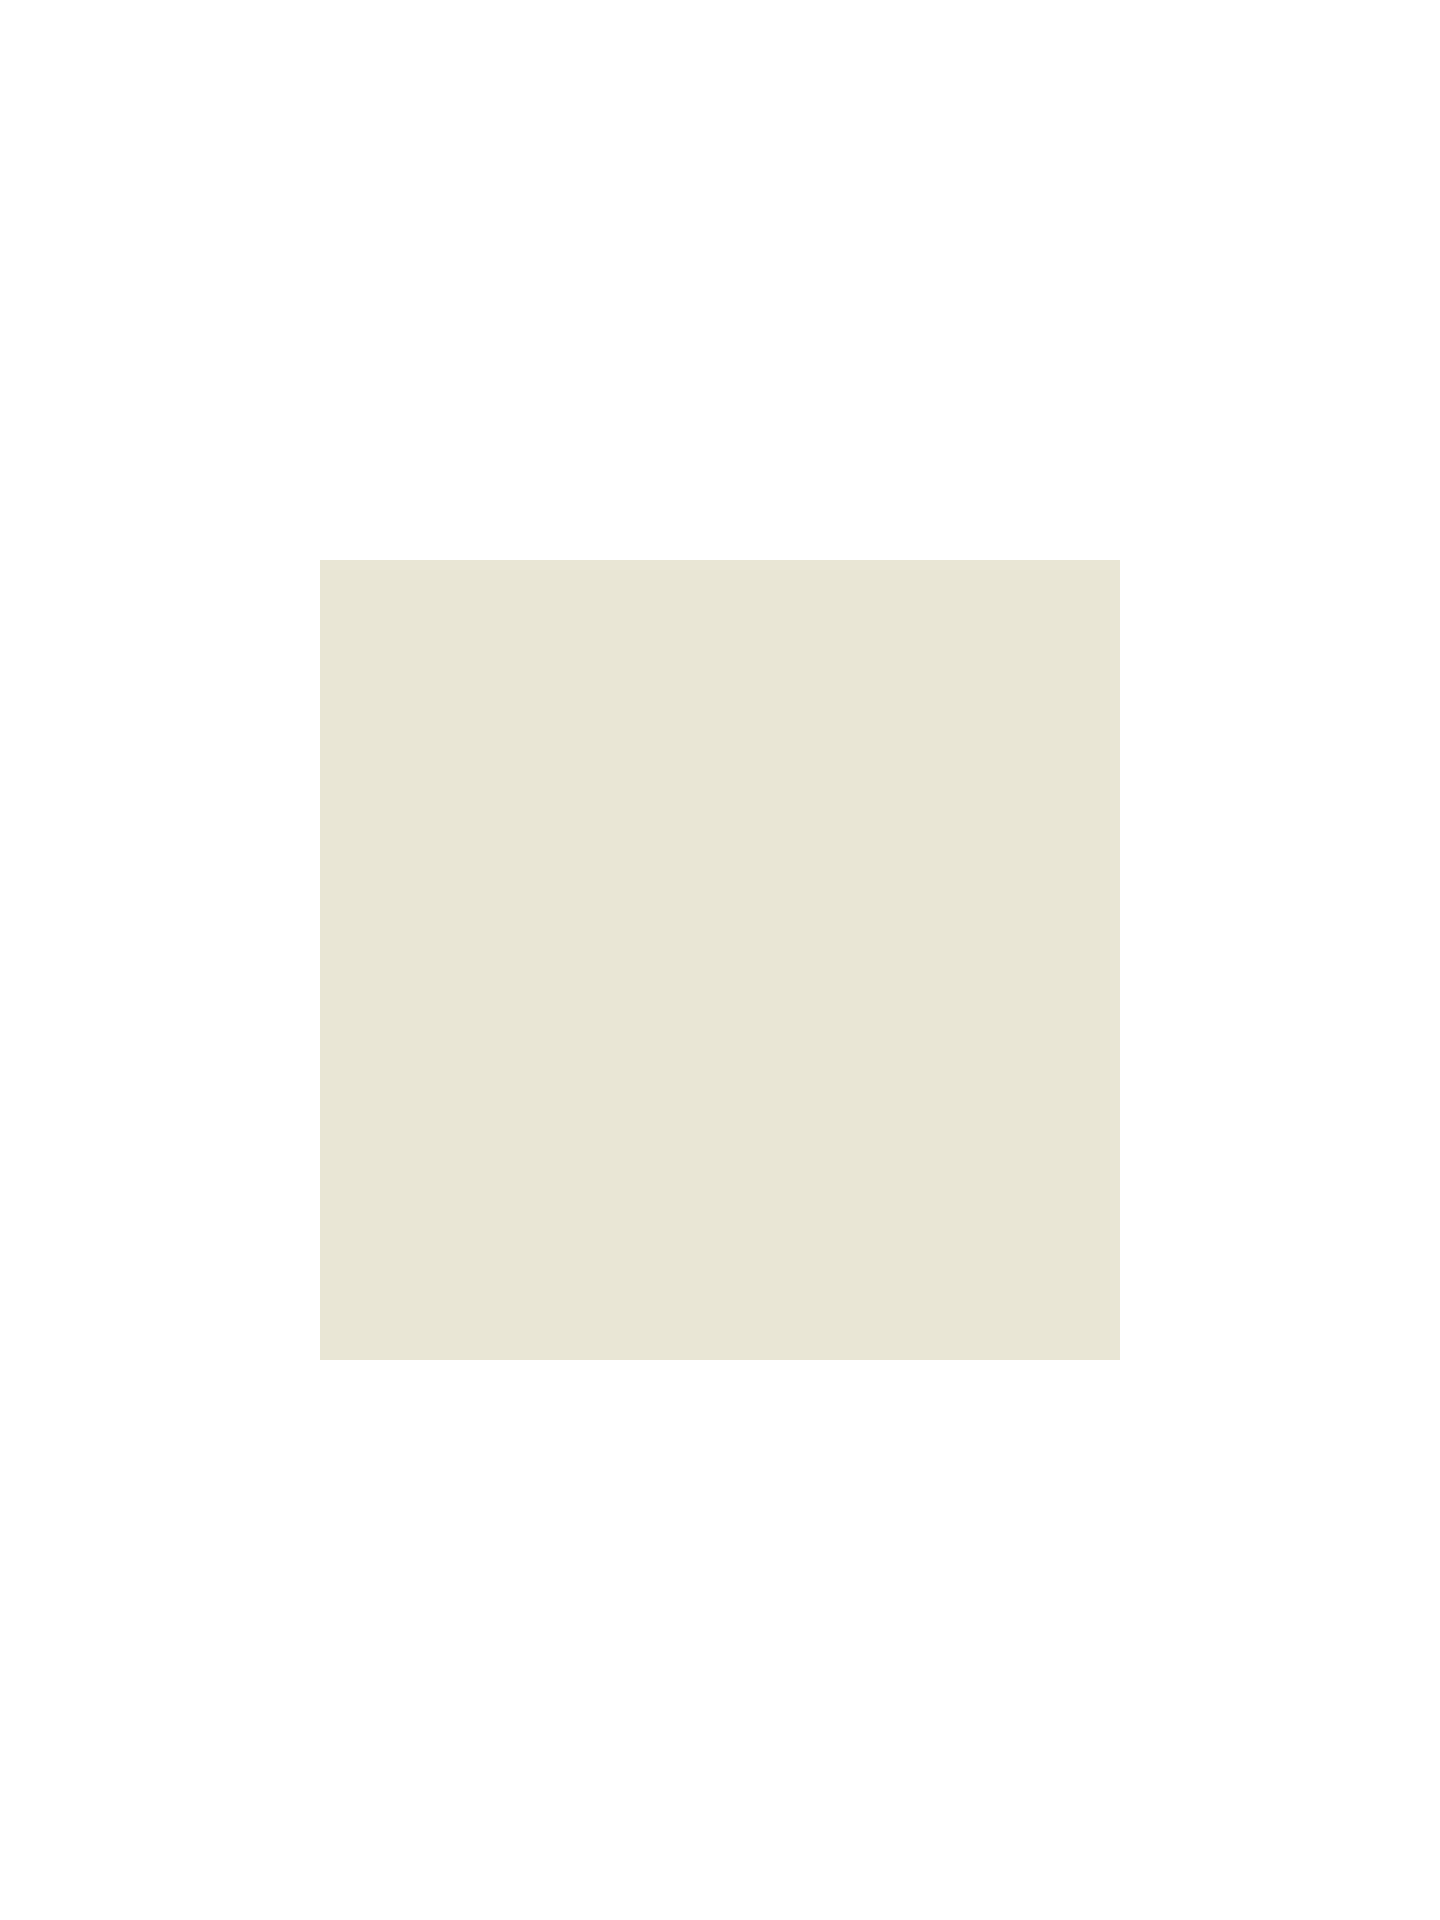 Buy The Little Greene Paint Company Intelligent Eggshell, Neutral Whites, Portland Stone Pale, (155), 1L Online at johnlewis.com